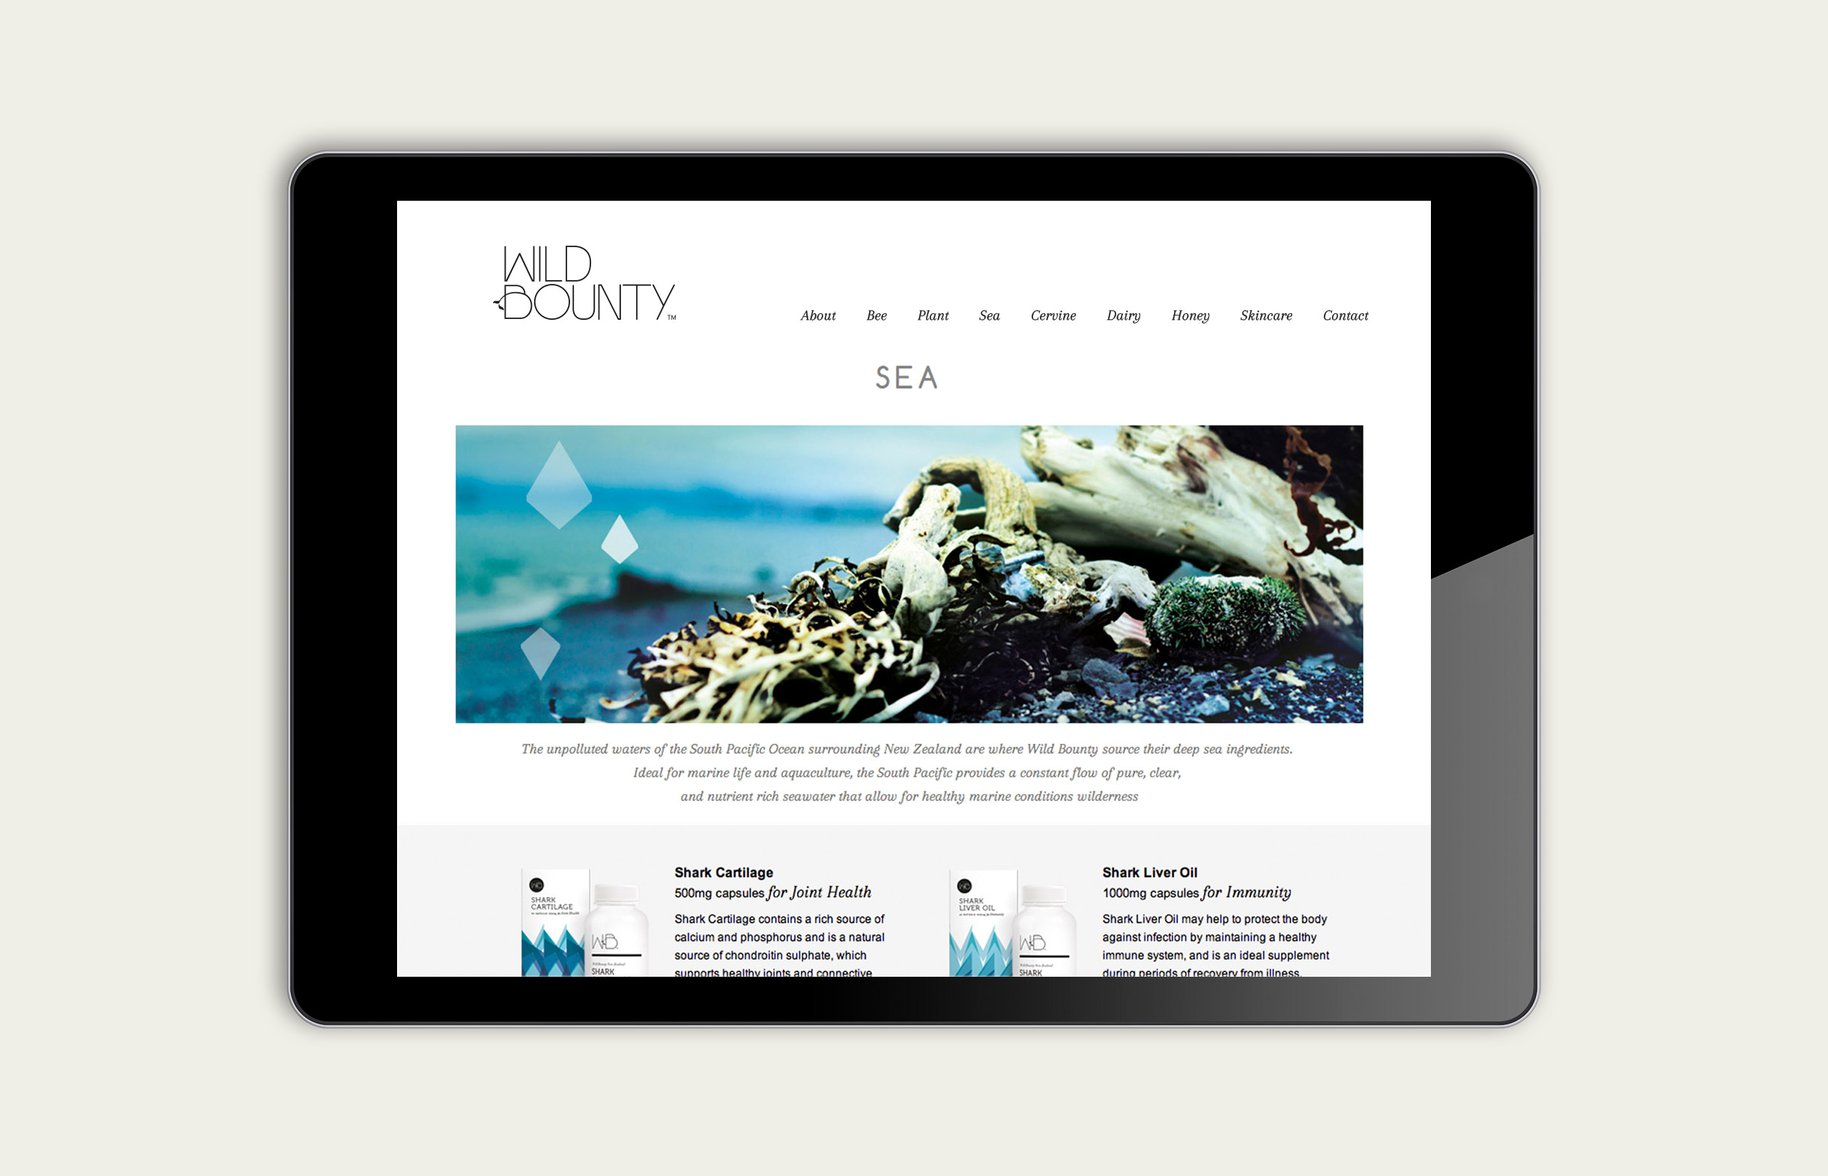 Wild Bounty iPad website sea